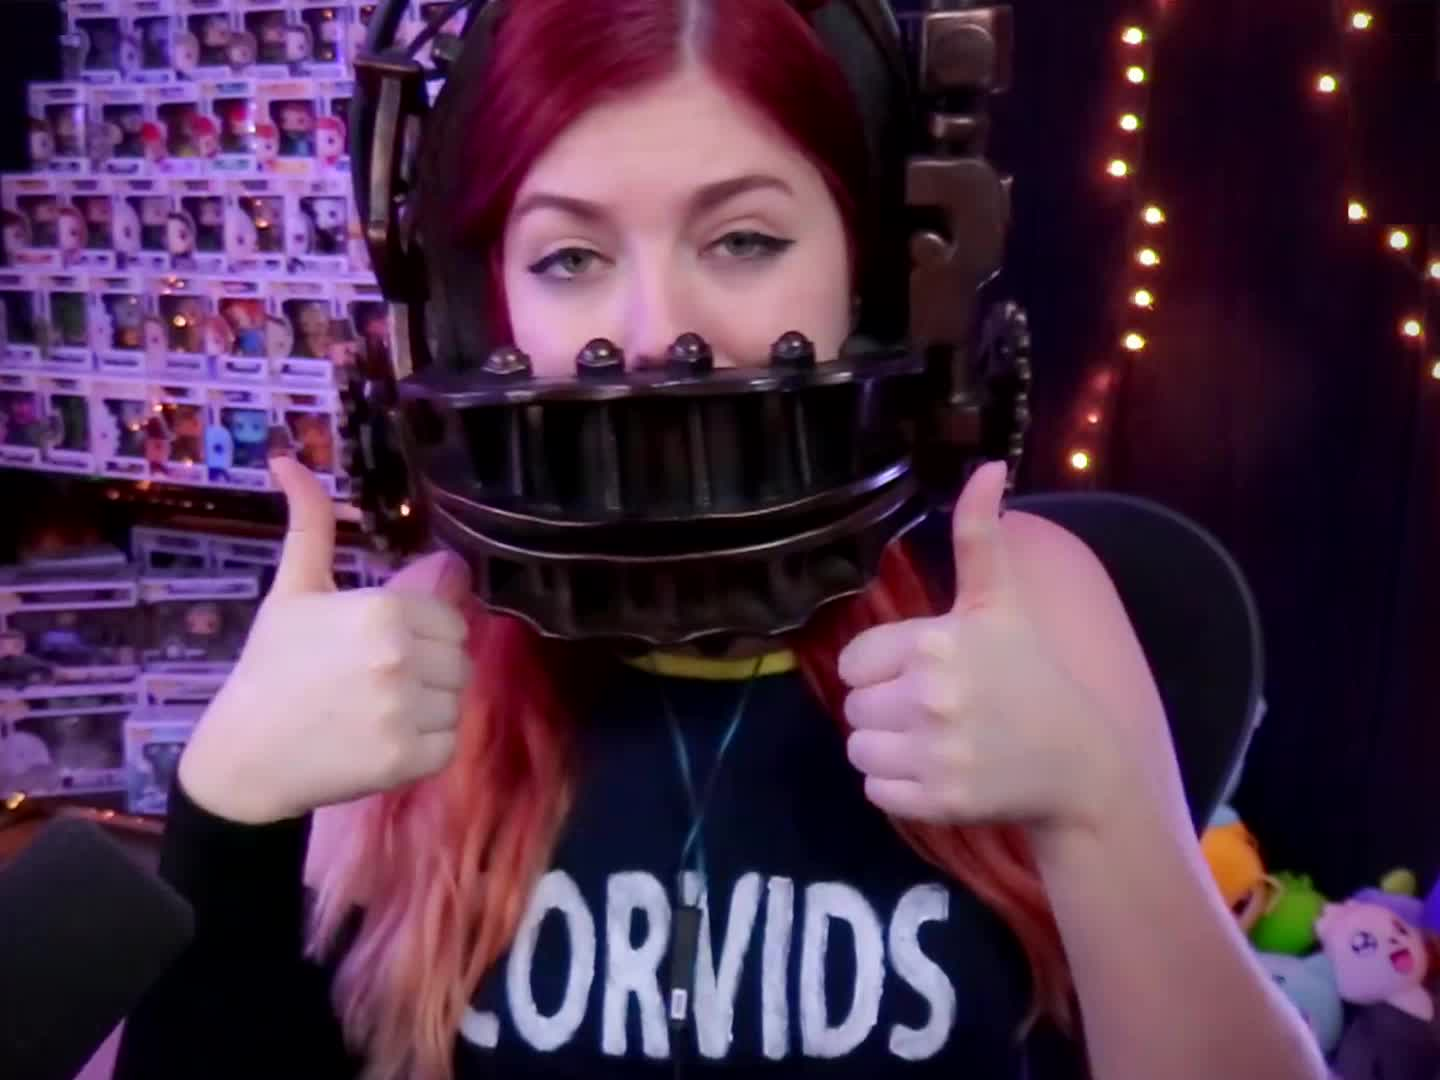 beartrap, cahla, cahlaflour, cheers, cosplay, good, great, instagram, loop, meg, red hair, saw, scary, spooky, spoopy, thumbs up, twitch, twitter, youtube, Cahlaflour Thumbs Up 02 GIFs